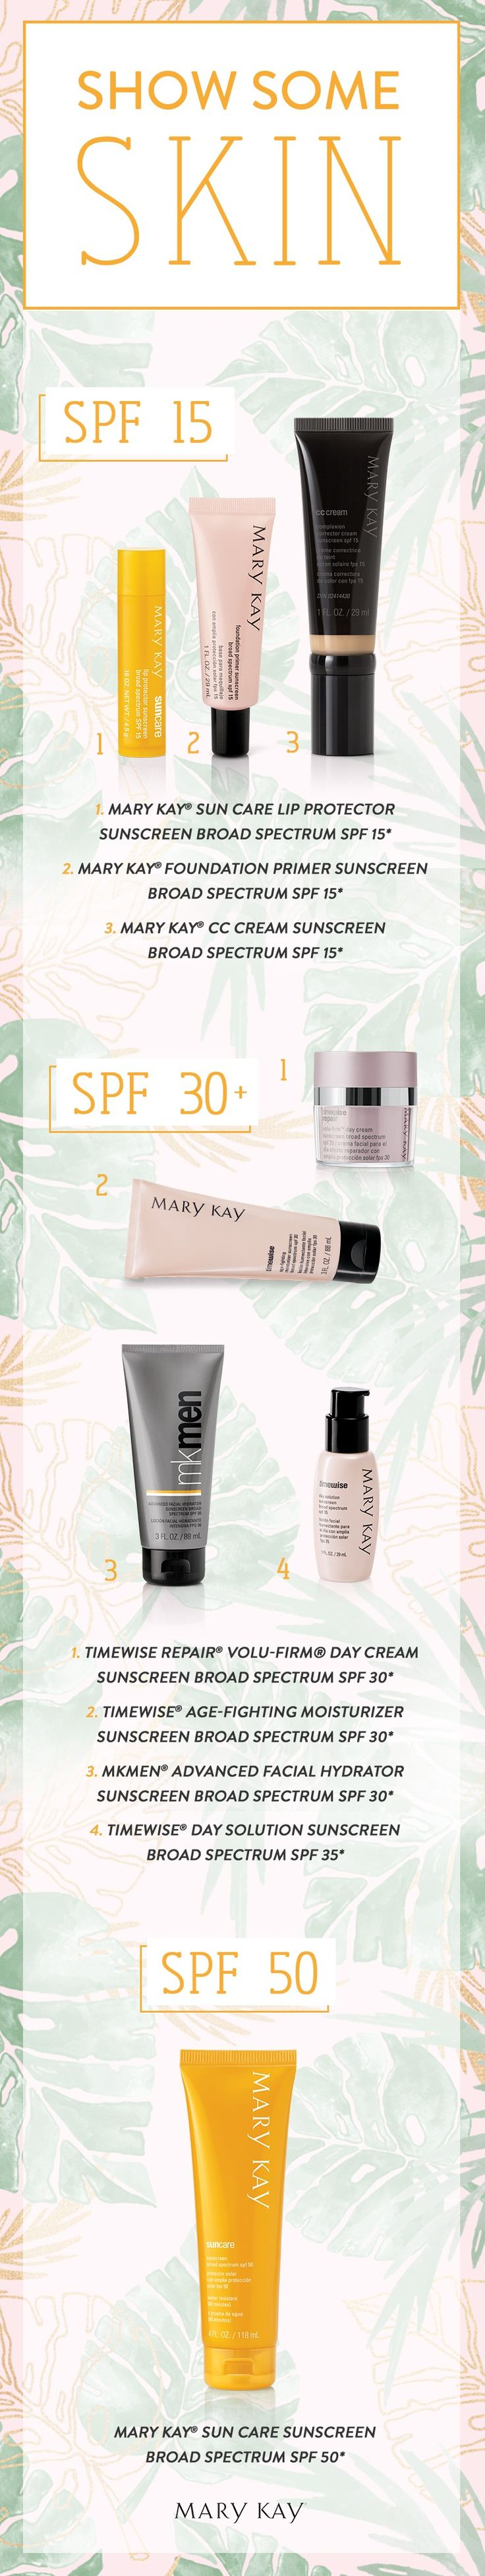 Spf Protection At Every Level! Find The Right Formula For Your Skin Care  Needs With